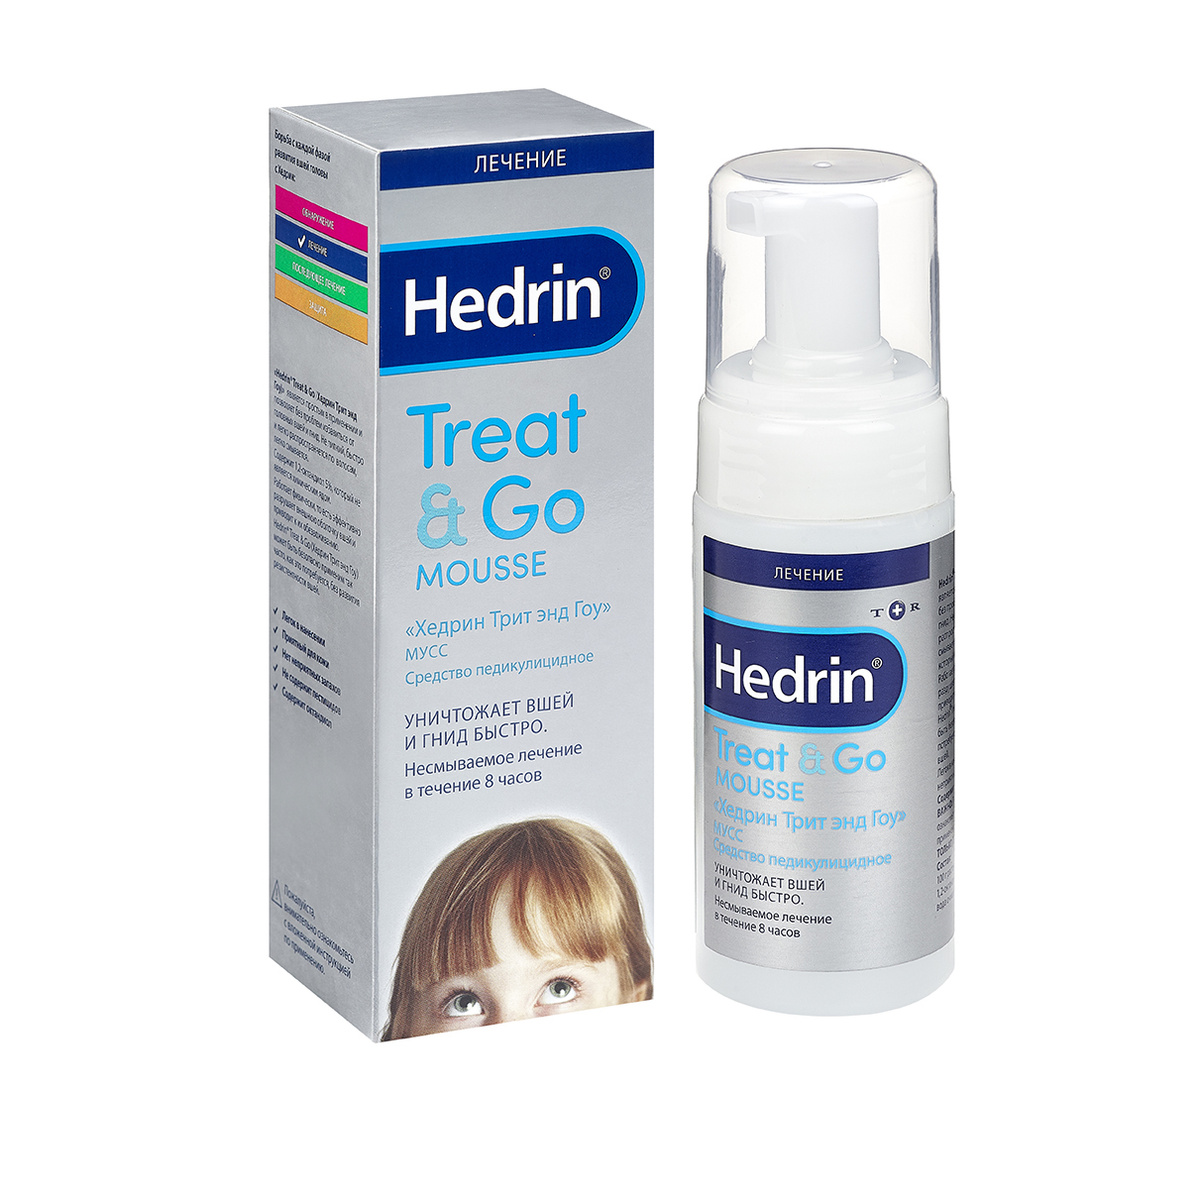 Мусс Hedrin Treat & Go